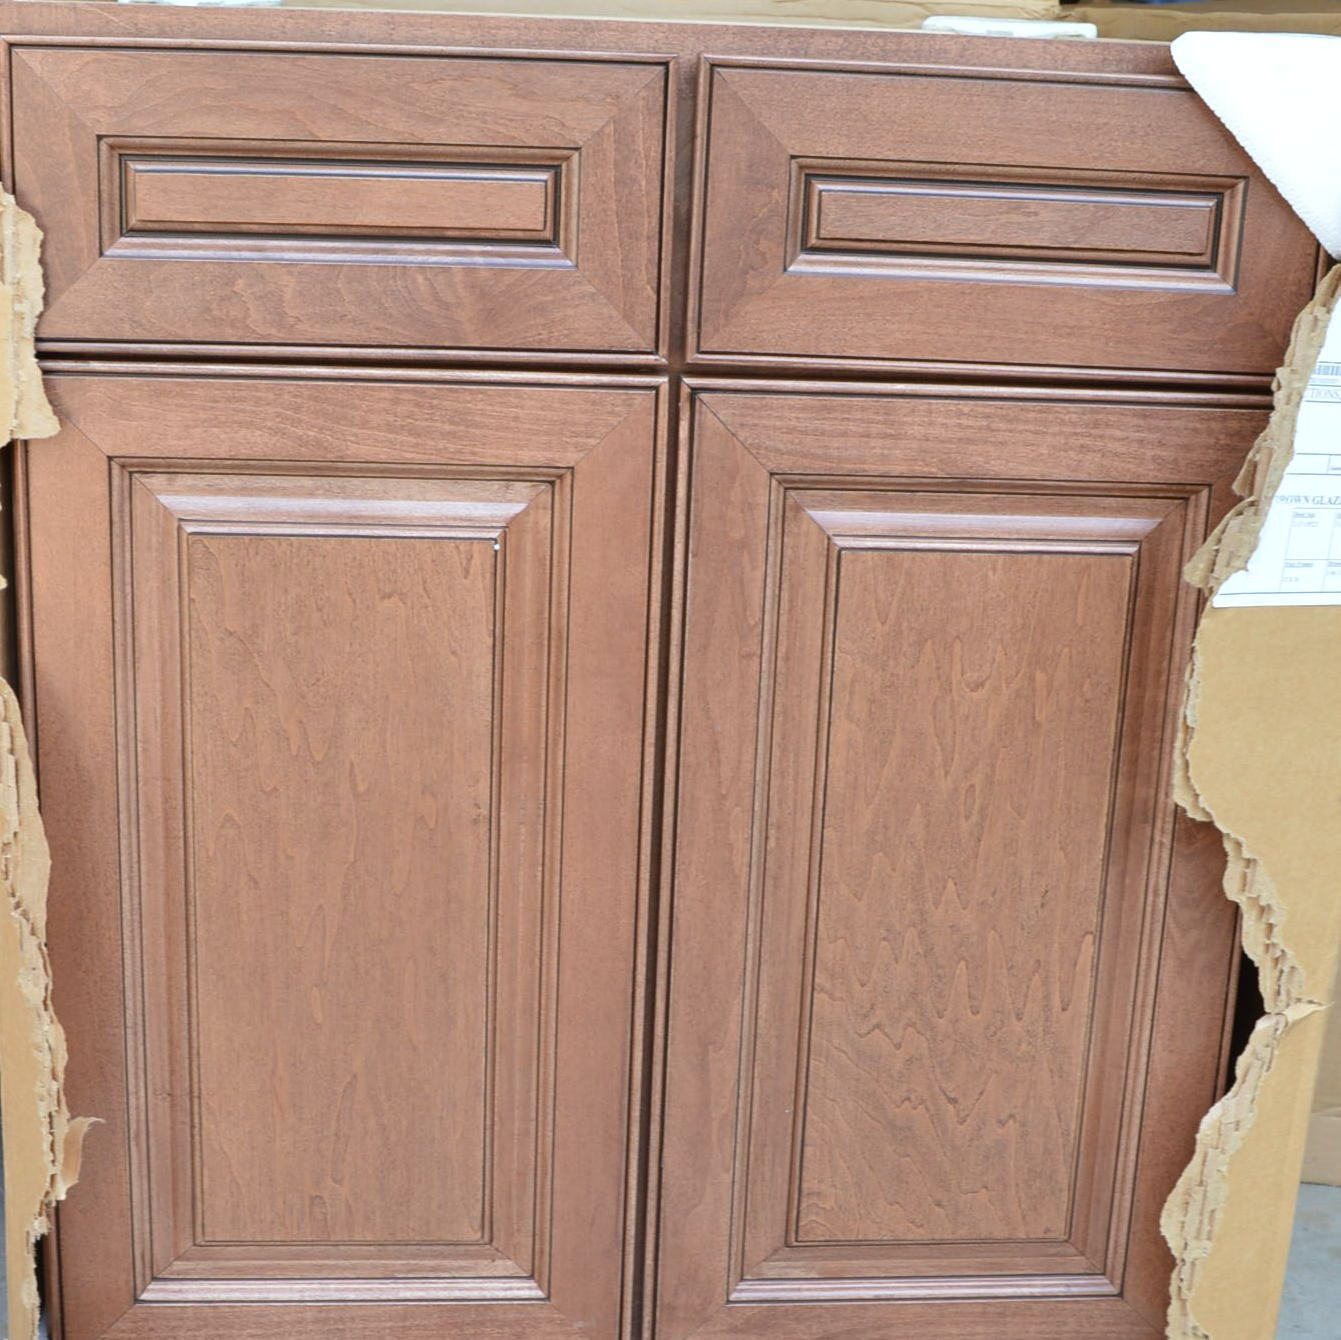 vintage cabinets, dressers and antique trunks auction in lexington